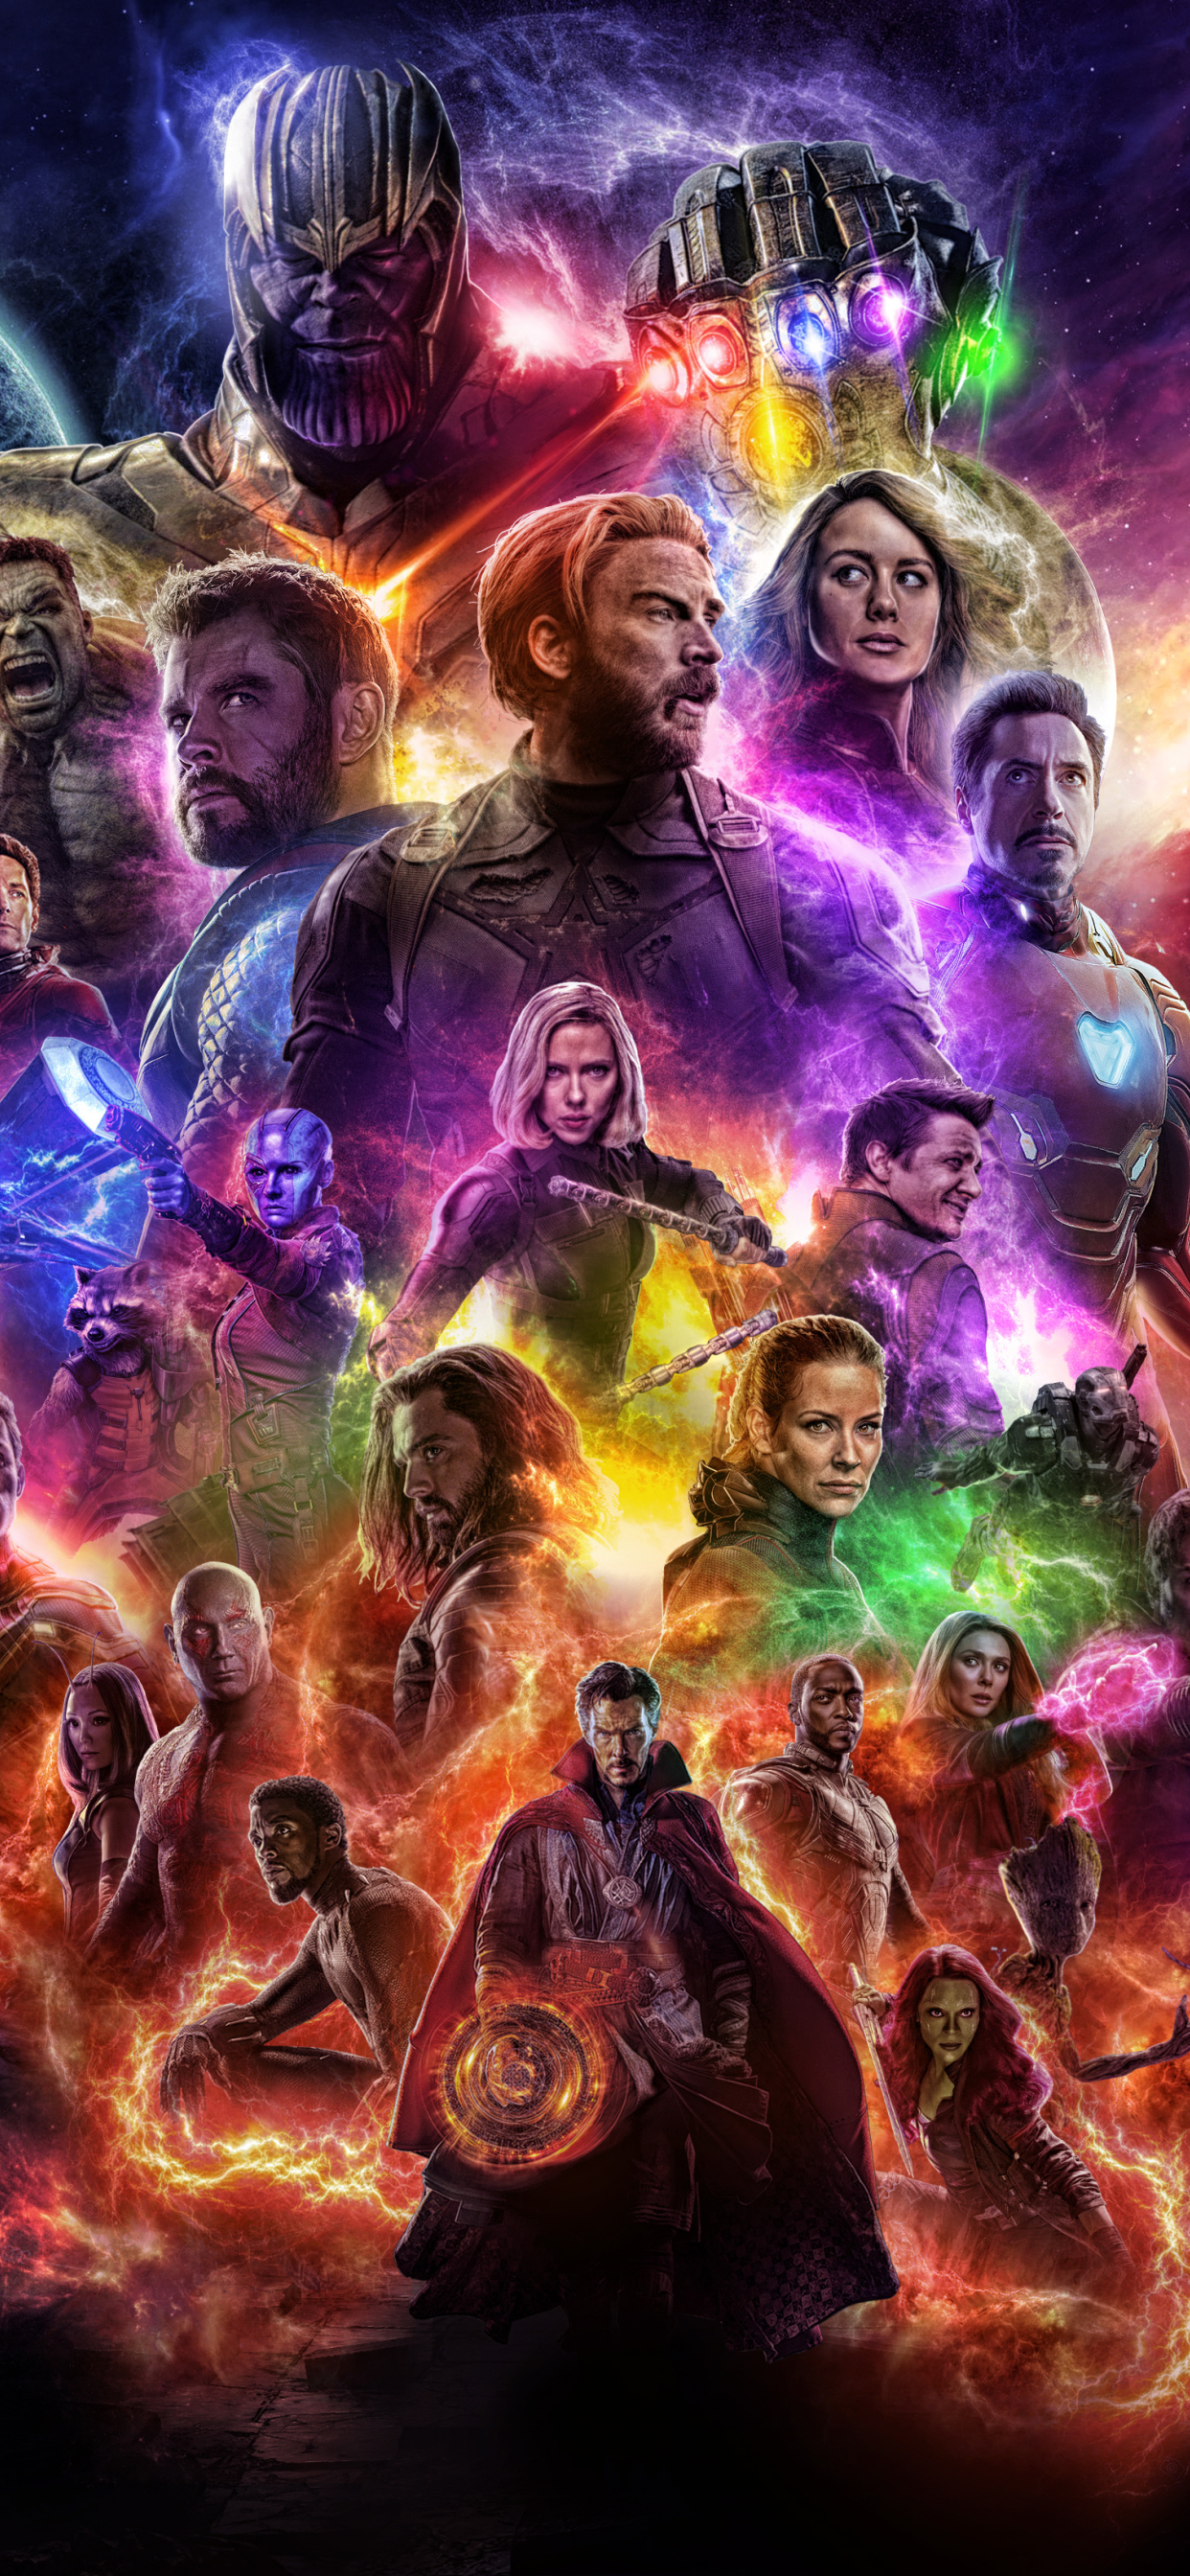 1242x2688 Avengers 4 Endgame 2019 Movie Keyart Iphone XS ...